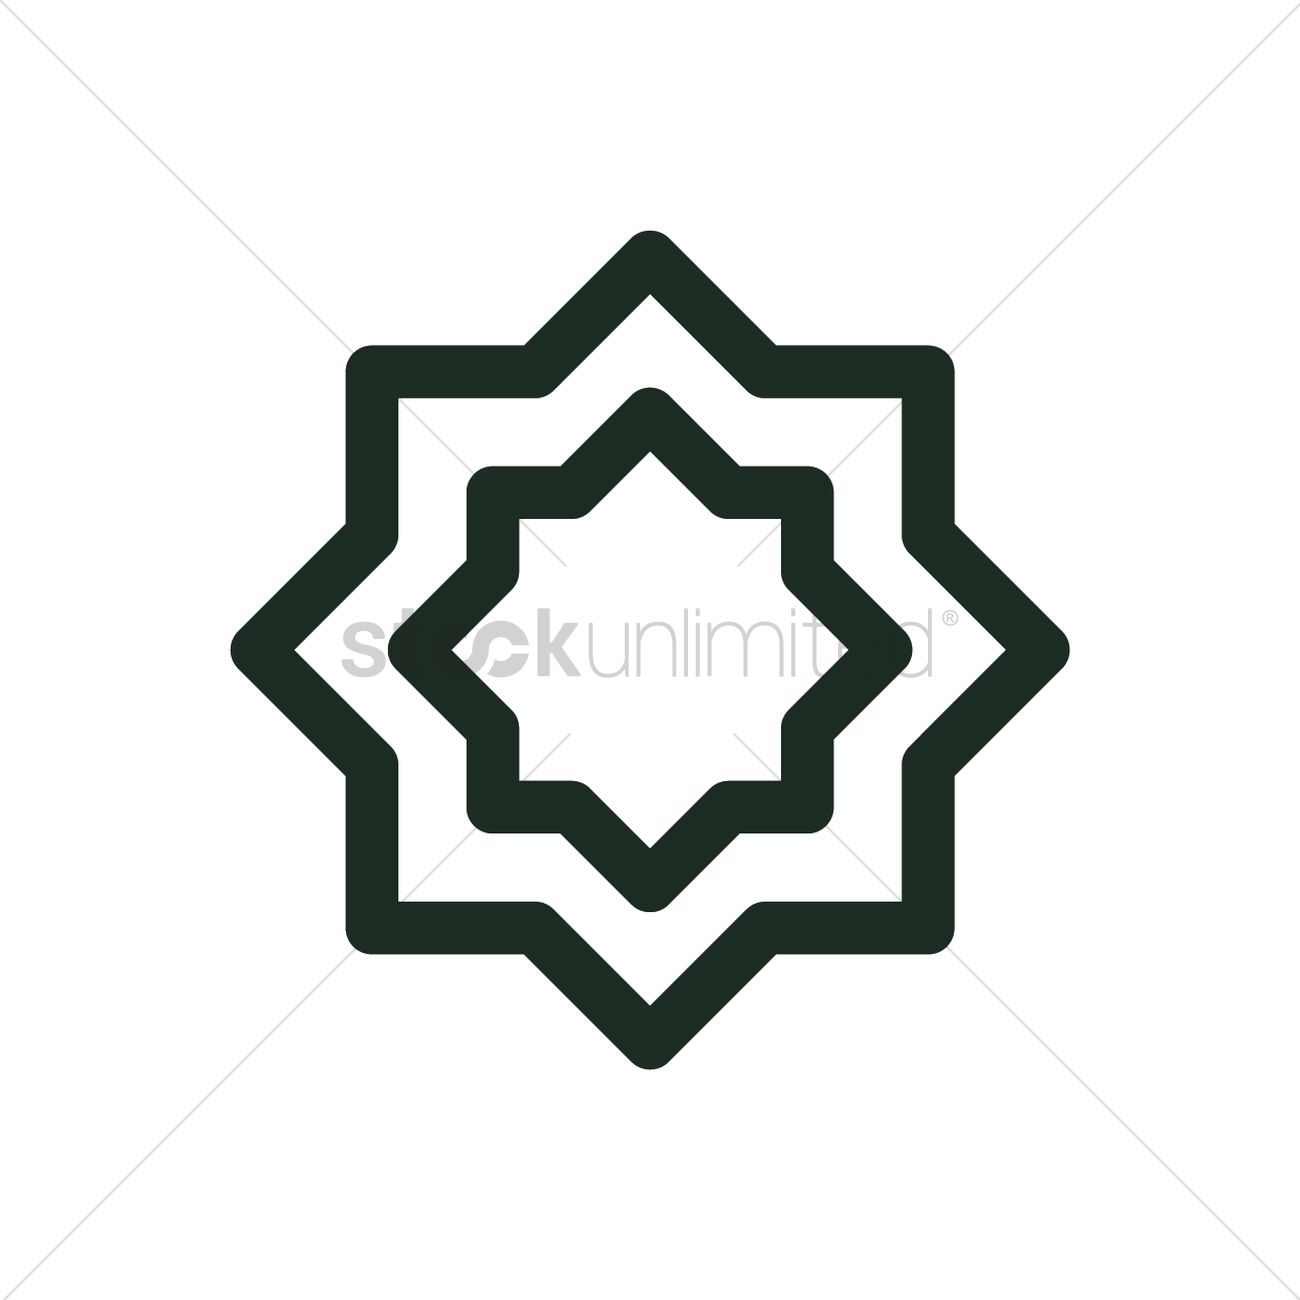 Islamic Design Icon Vector Image 2024502 Stockunlimited